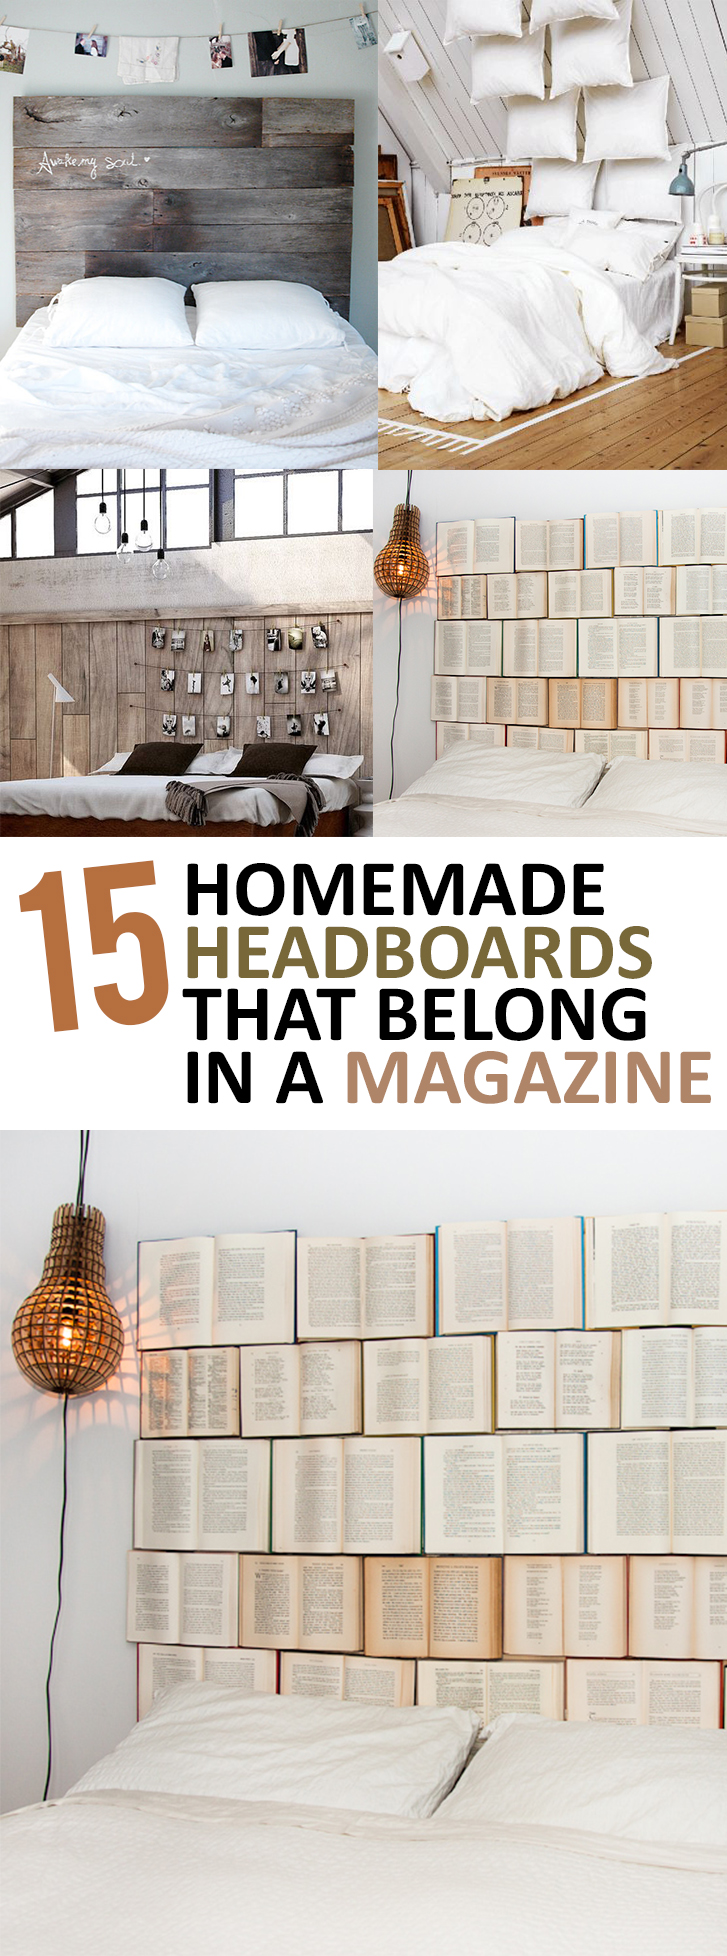 Headboards, homemade headboards, magazine headboards, DIY headboards, easy headboard ideas, popular pin, bedroom remodel, bedroom updates, bedroom upgrades.